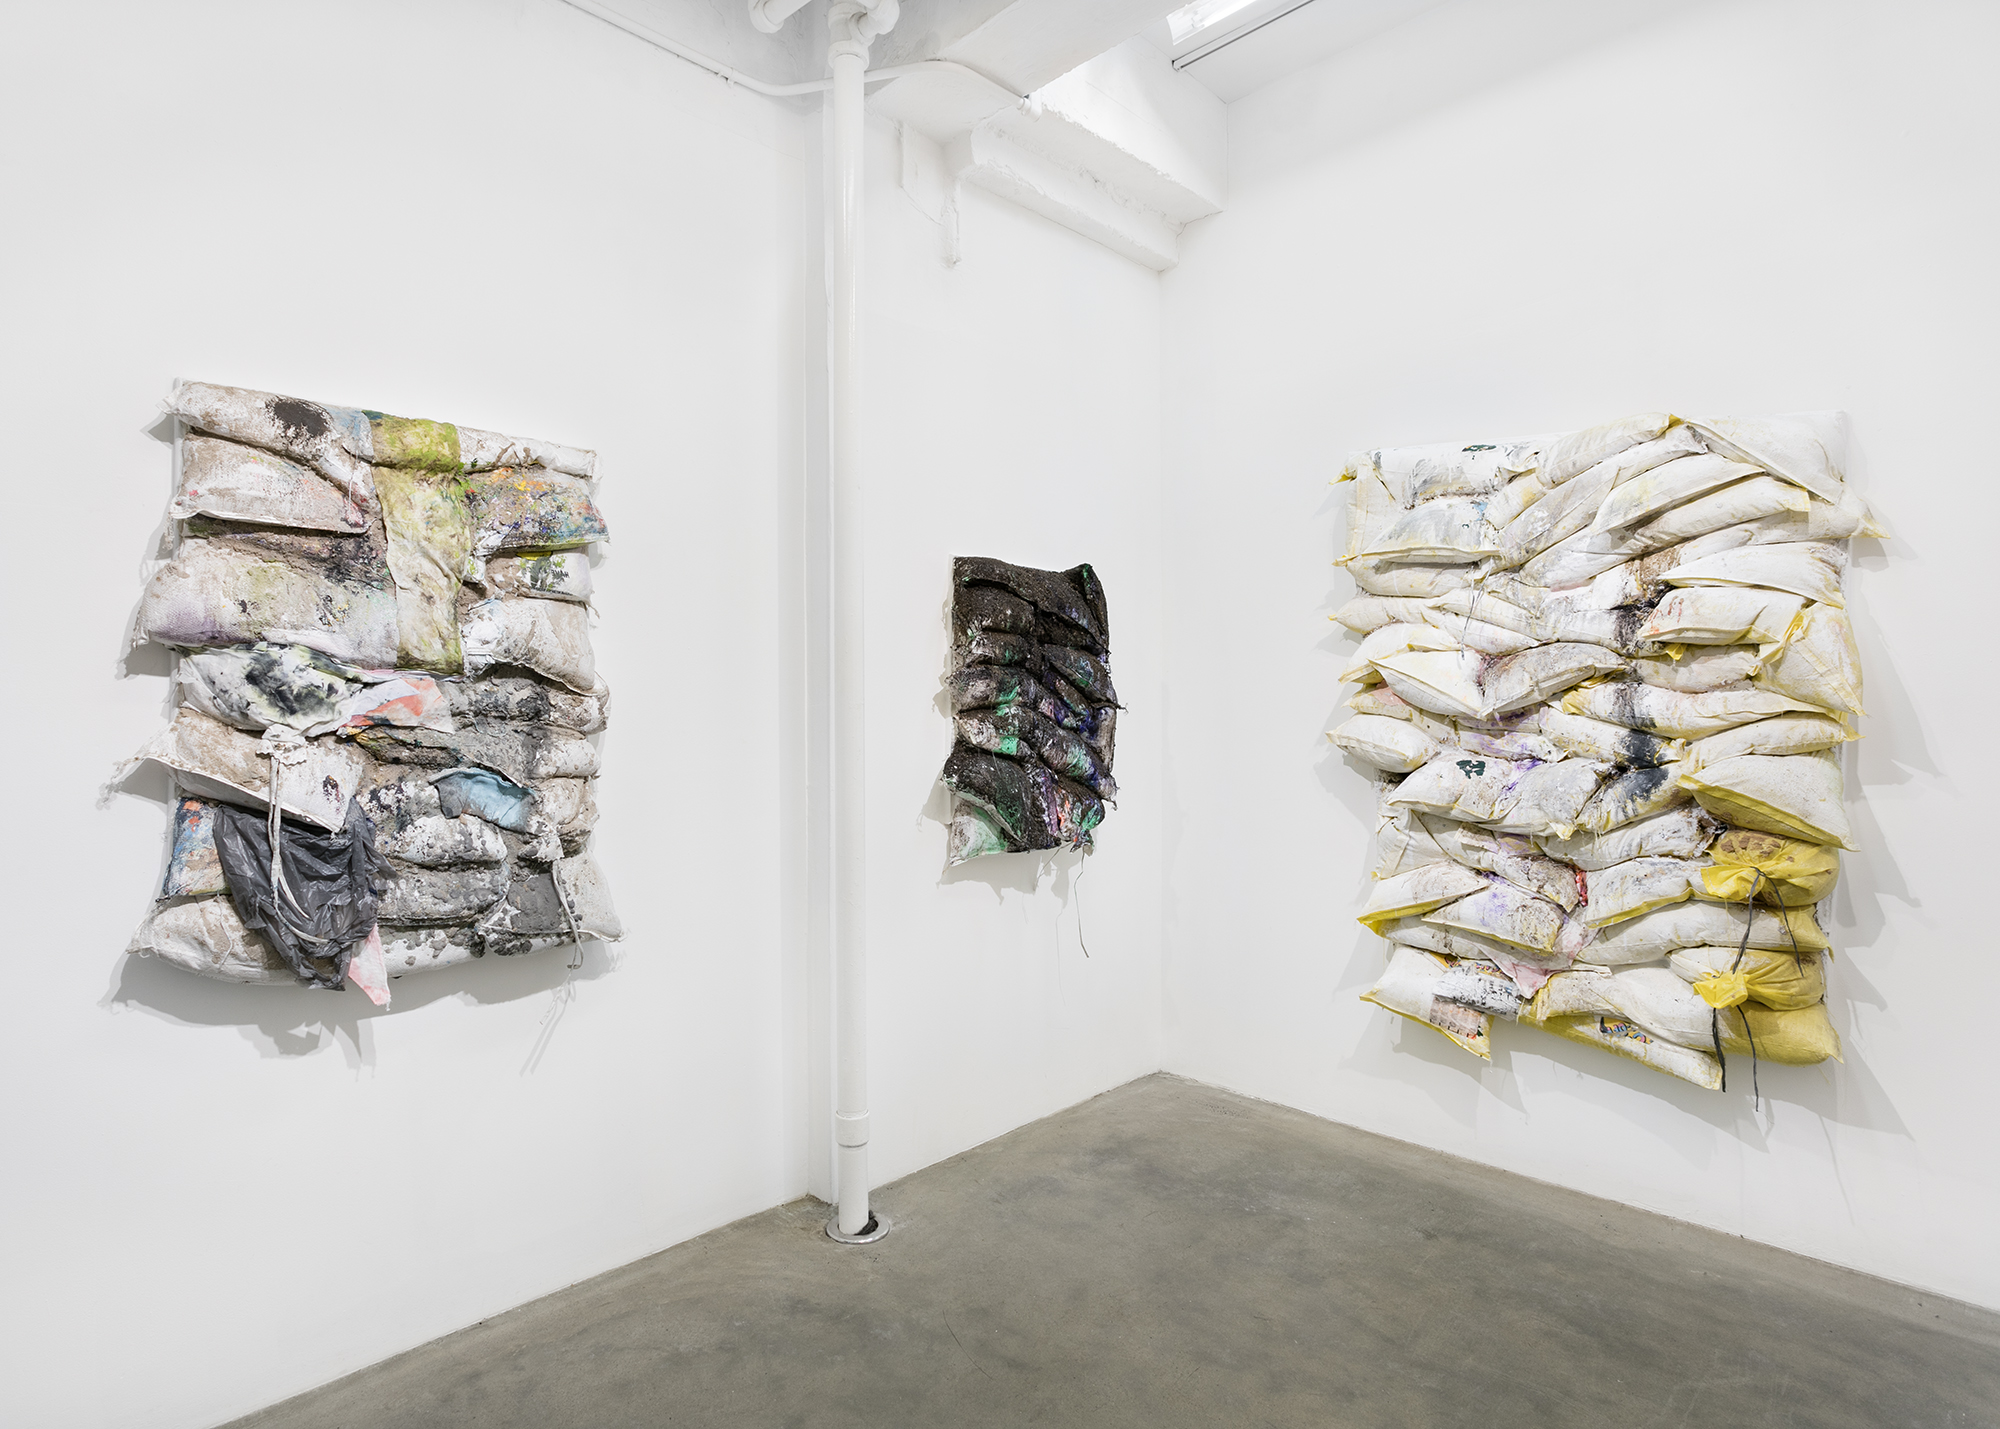 Installation view of Jeremy Lawson 'Rain Follows the Plow' showing works made with assembled and painted found sandbags